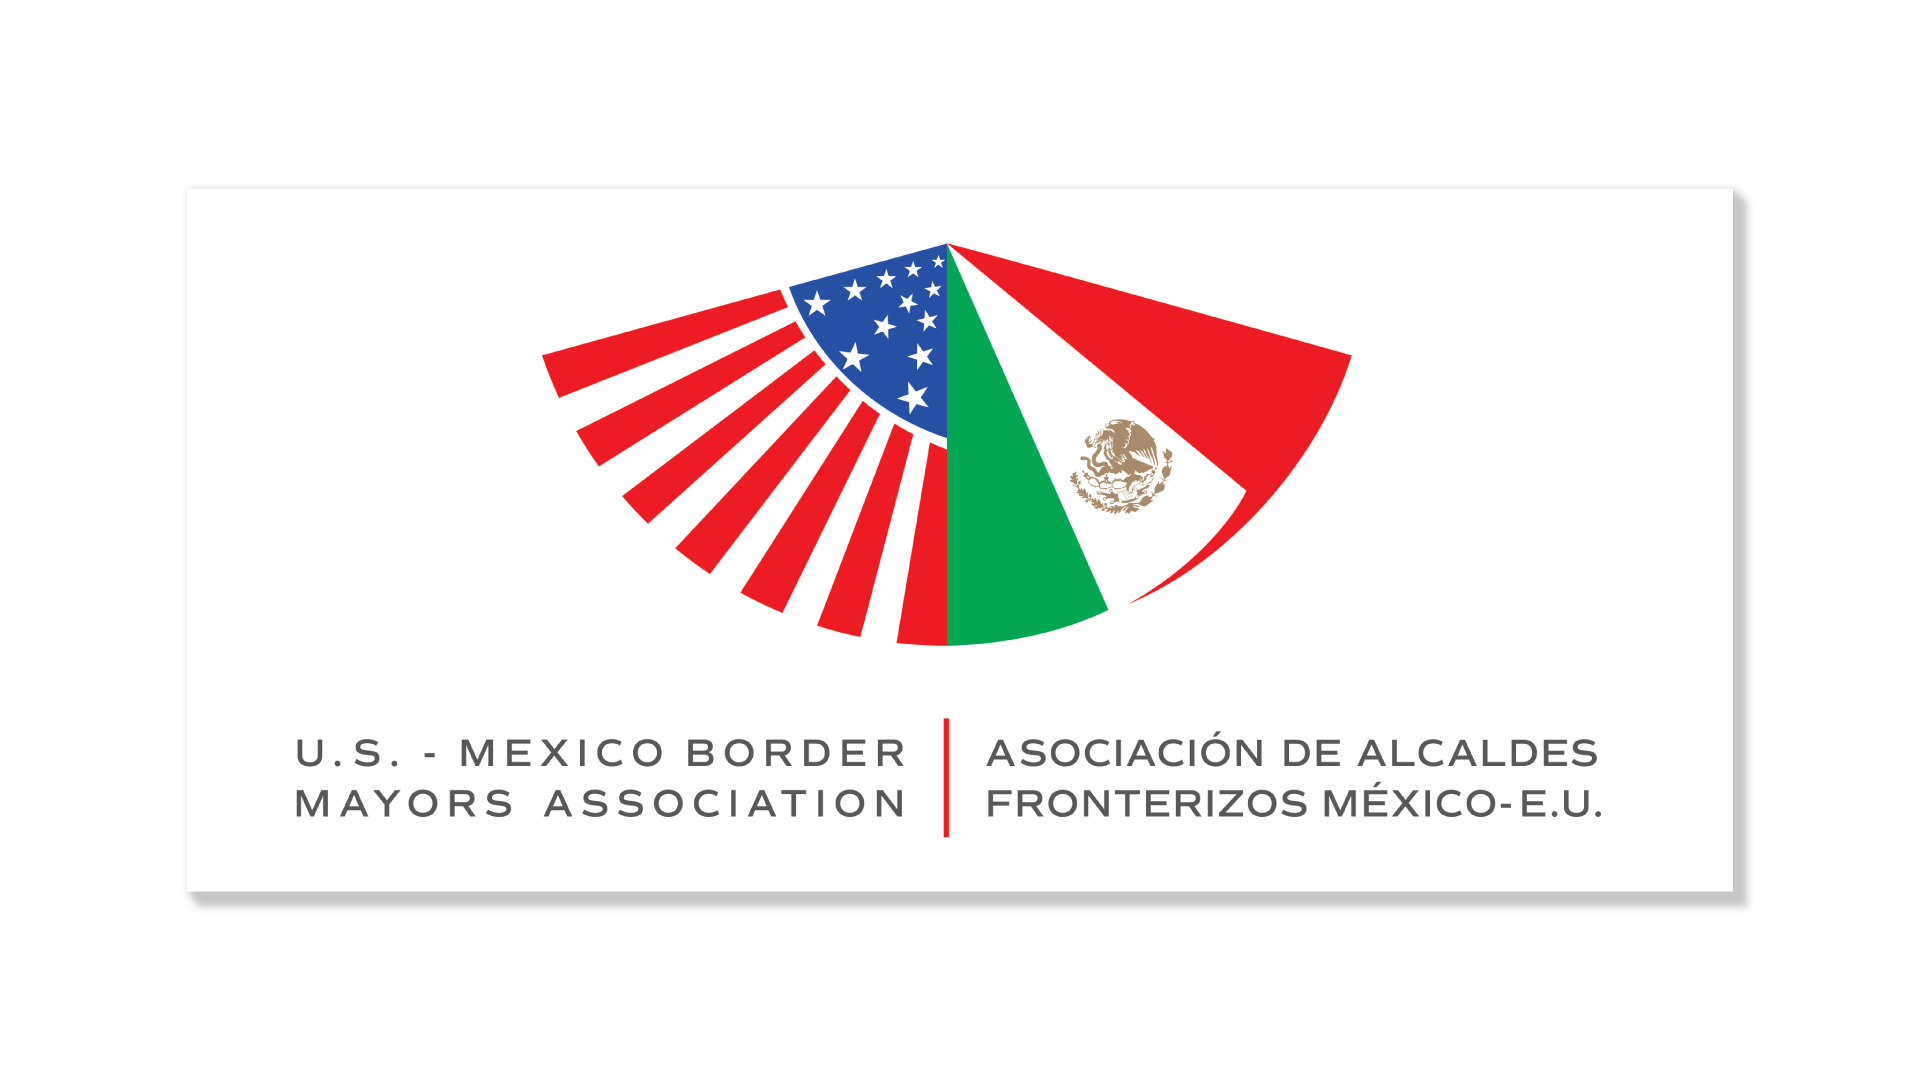 U.S. - Mexico Border Mayors Association